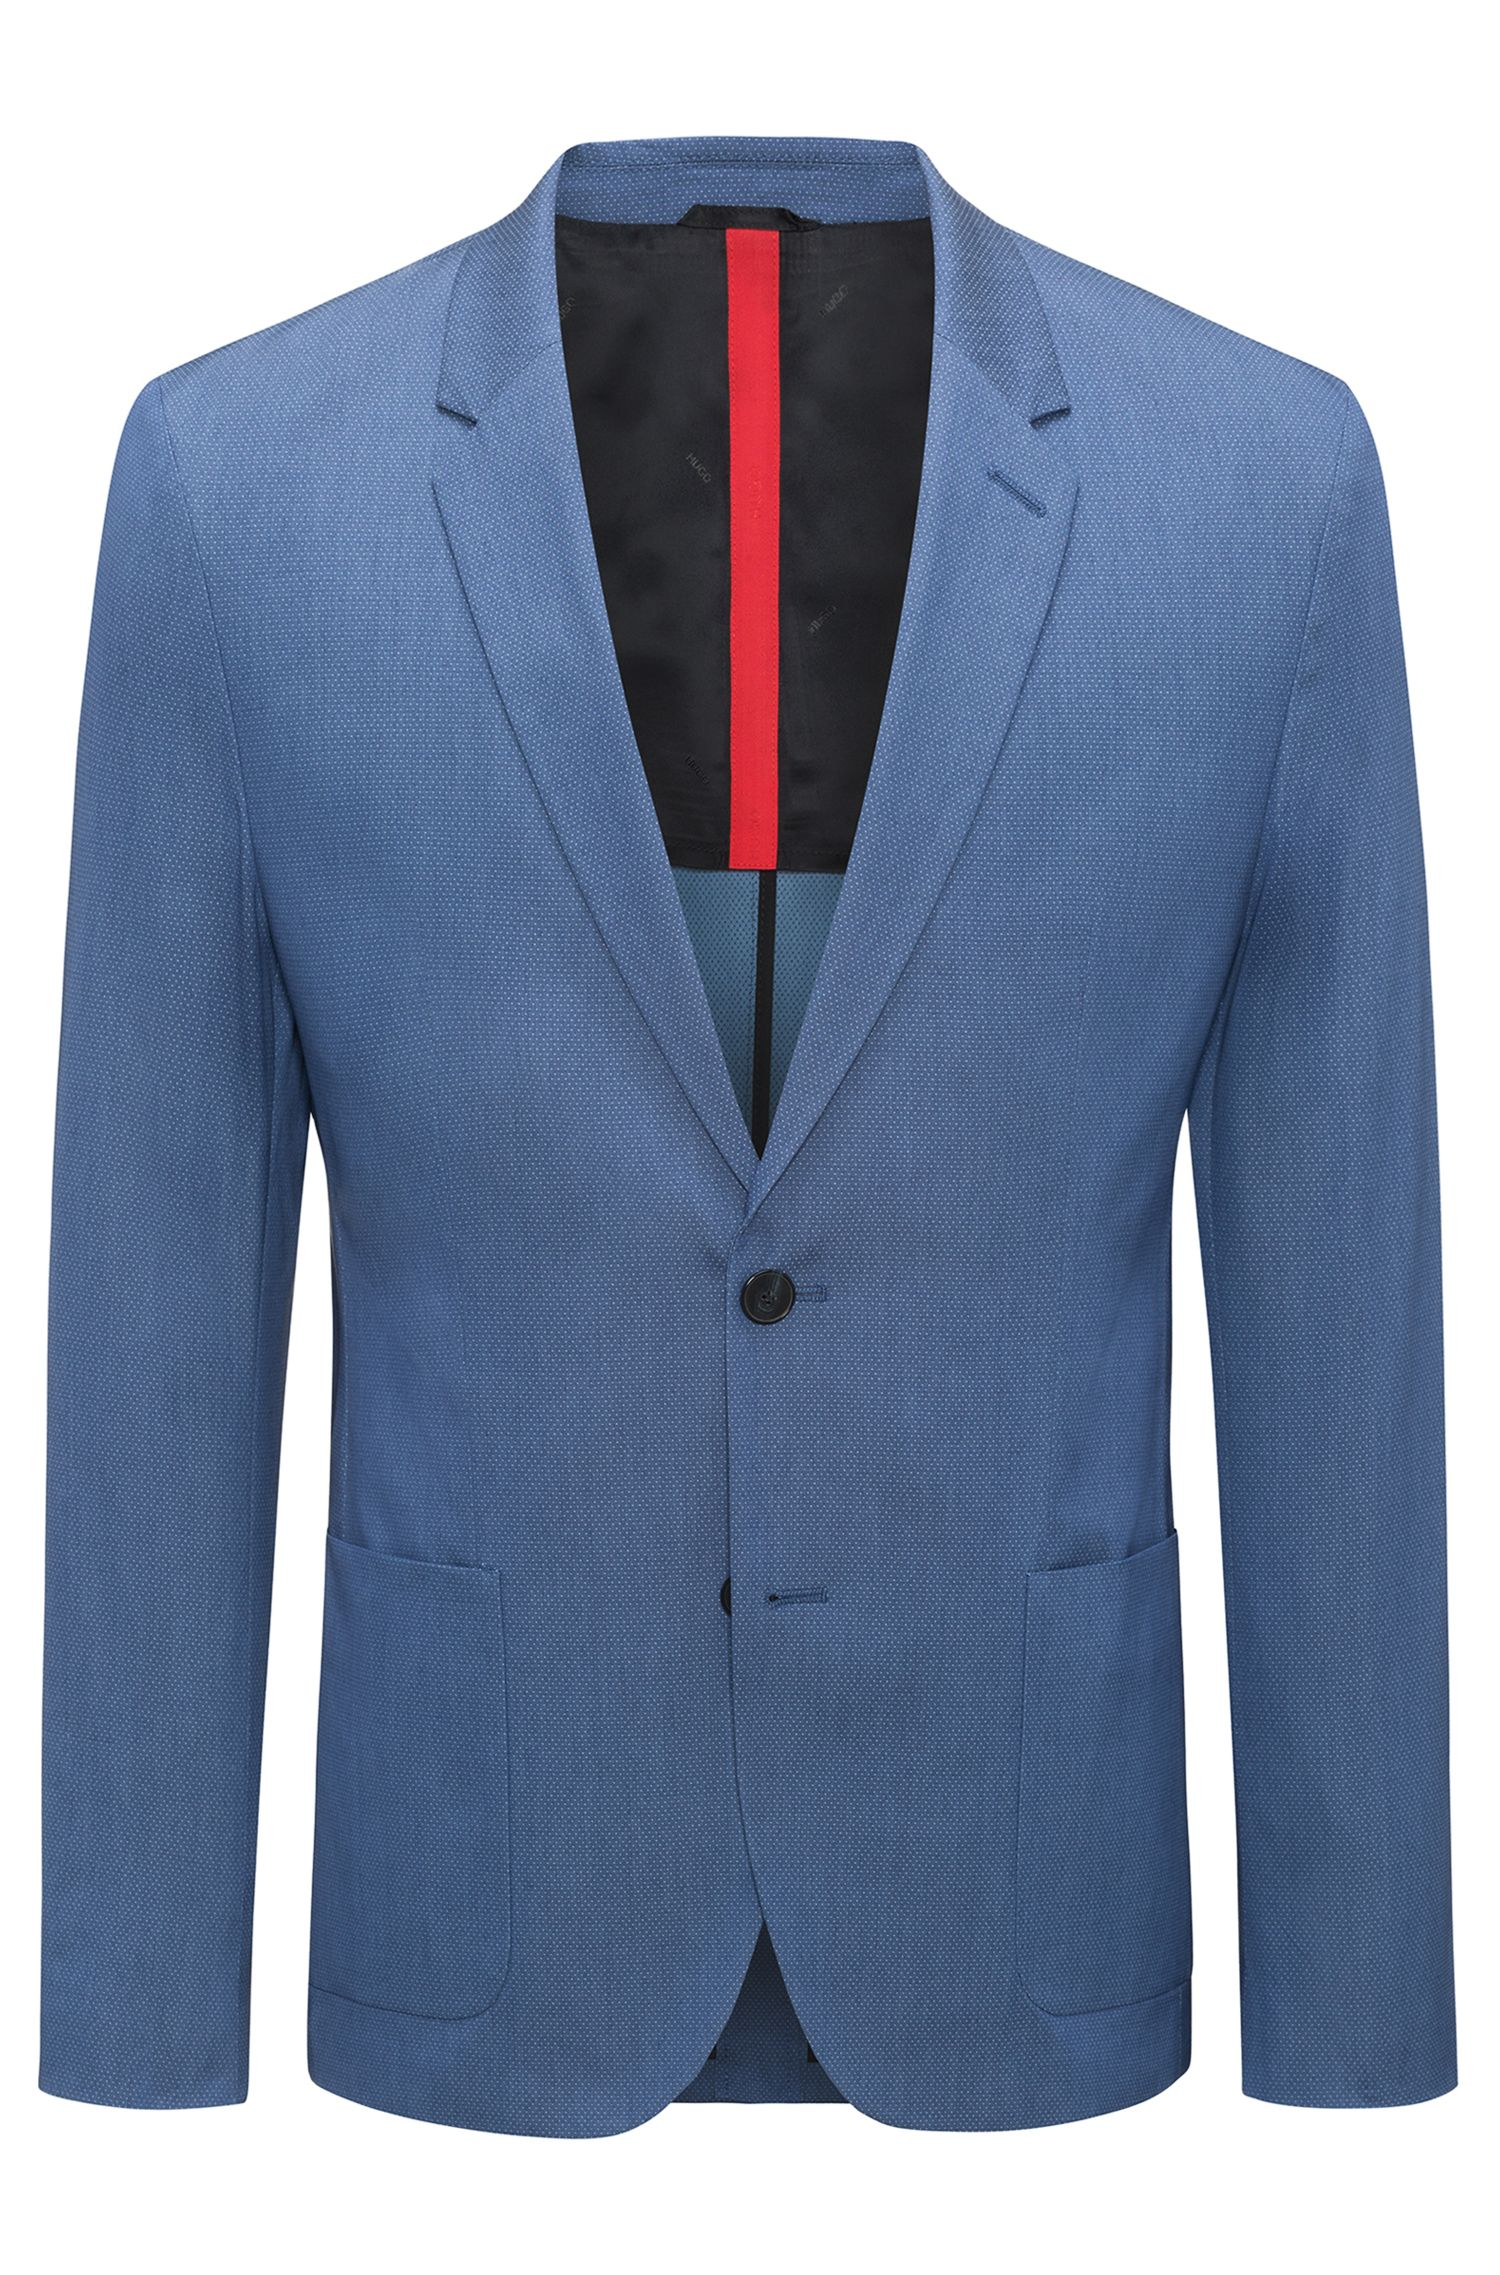 Slim-fit blazer in a yarn-dyed stretch-cotton blend , Turquoise